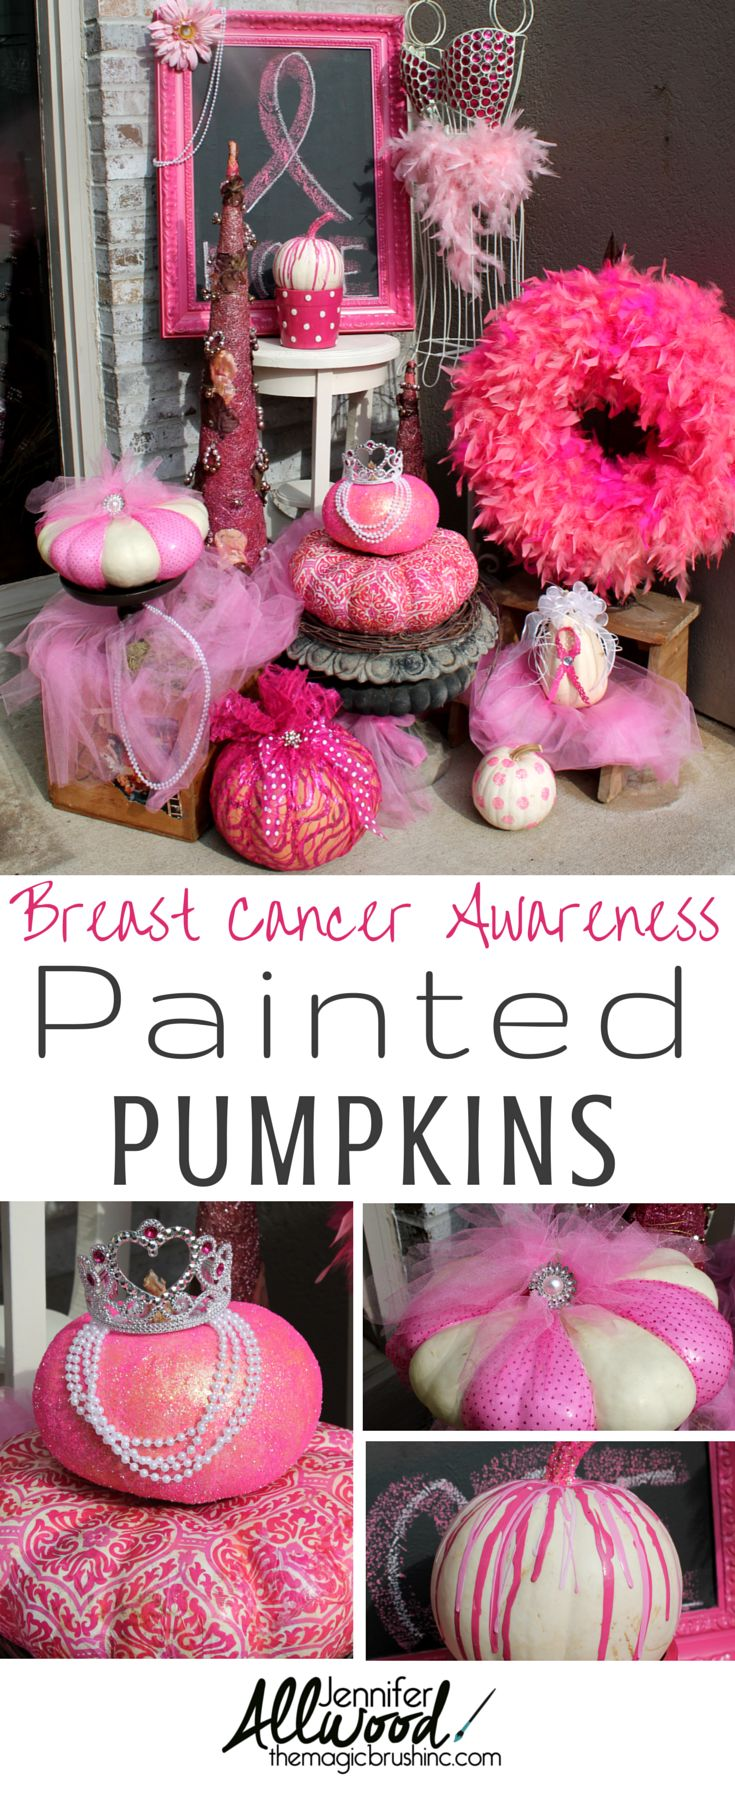 Paint a pink pumpkin for October's Breast Cancer Awareness Month! More fall decorating ideas and pumpkin painting inspirations at theMagicBrushinc.com